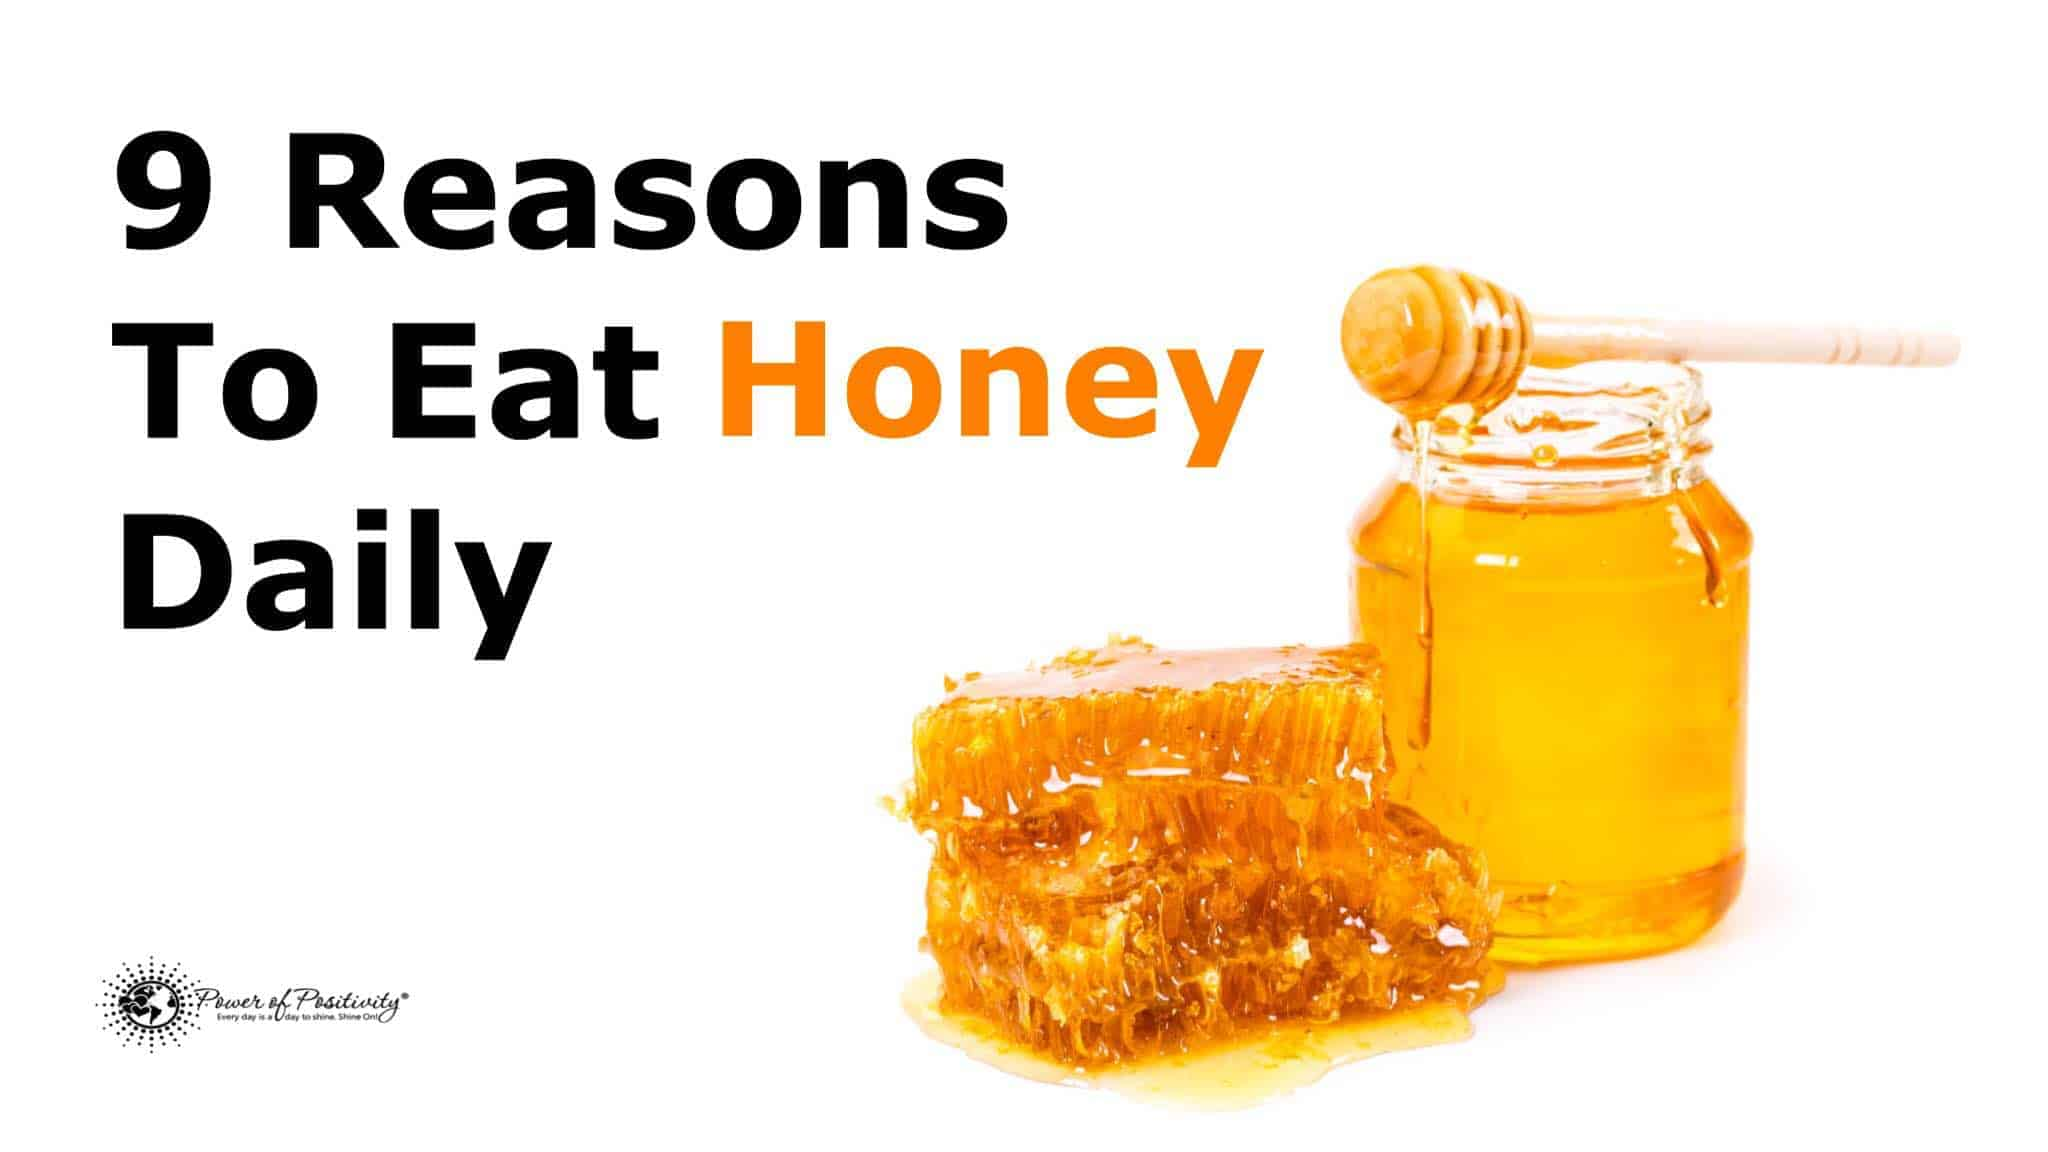 9 reasons to eat honey daily have been documented in early greek